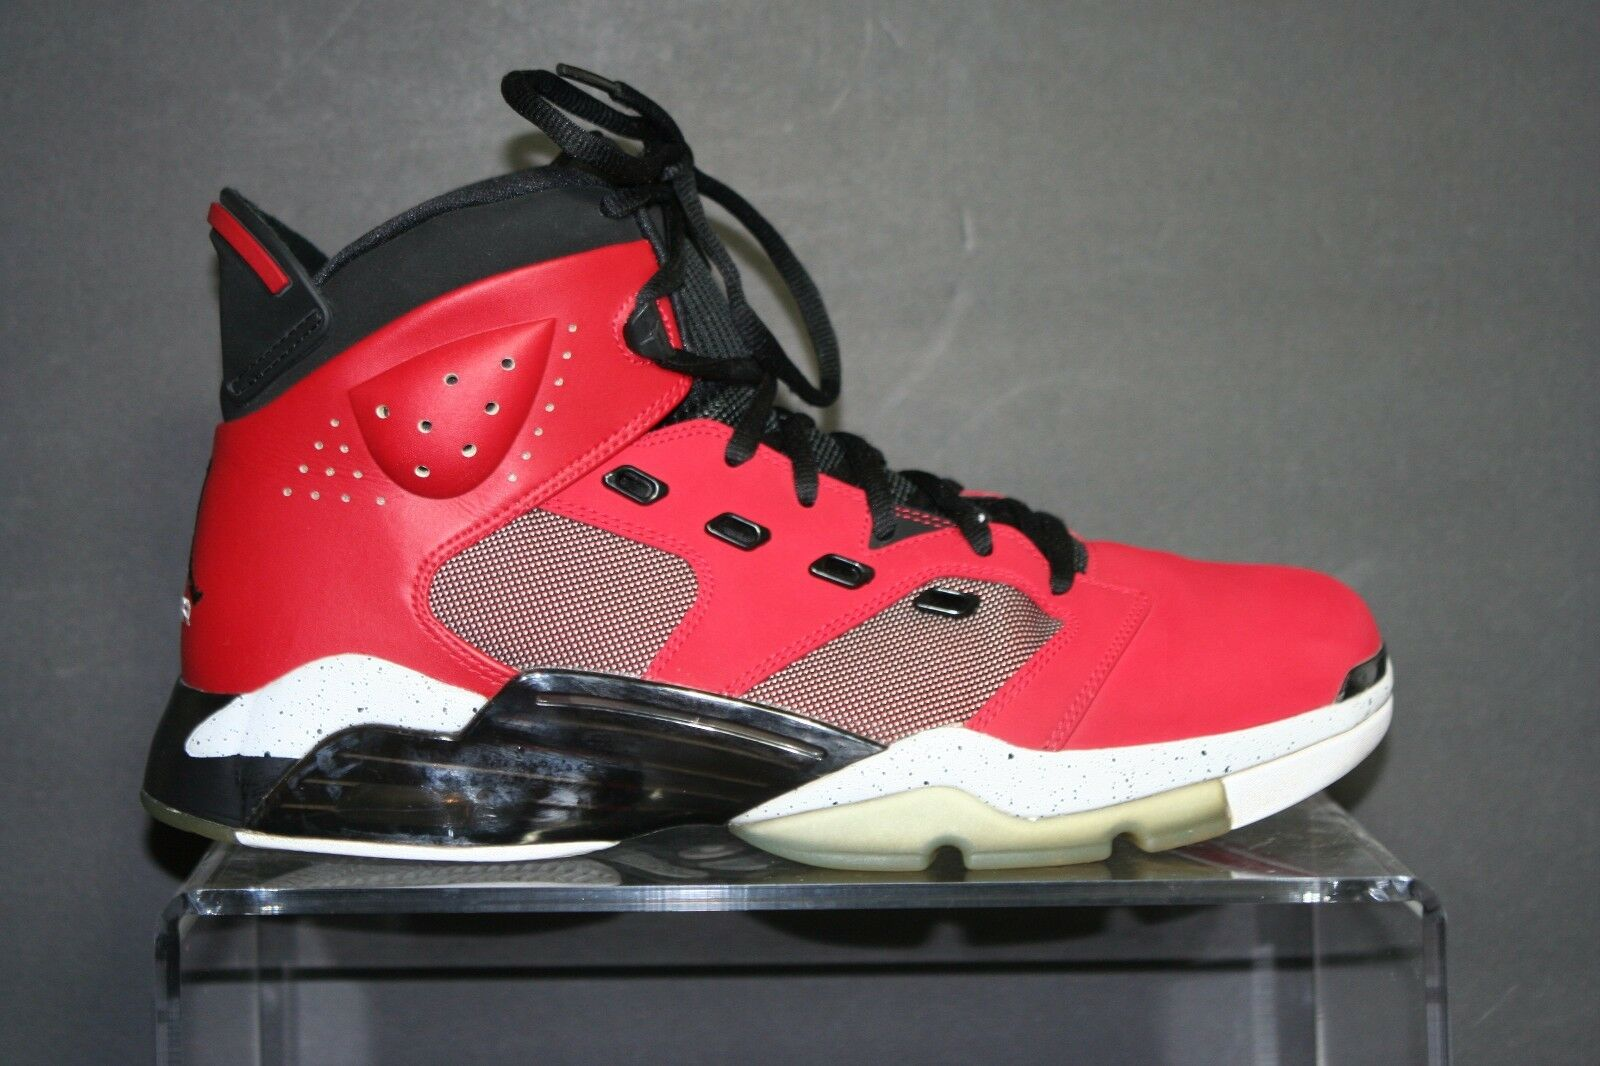 finest selection 5e930 b278e ... cheap zapatillas de baloncesto nike air jordan 6 17 23 multi toro bred  hombres 12 athletic